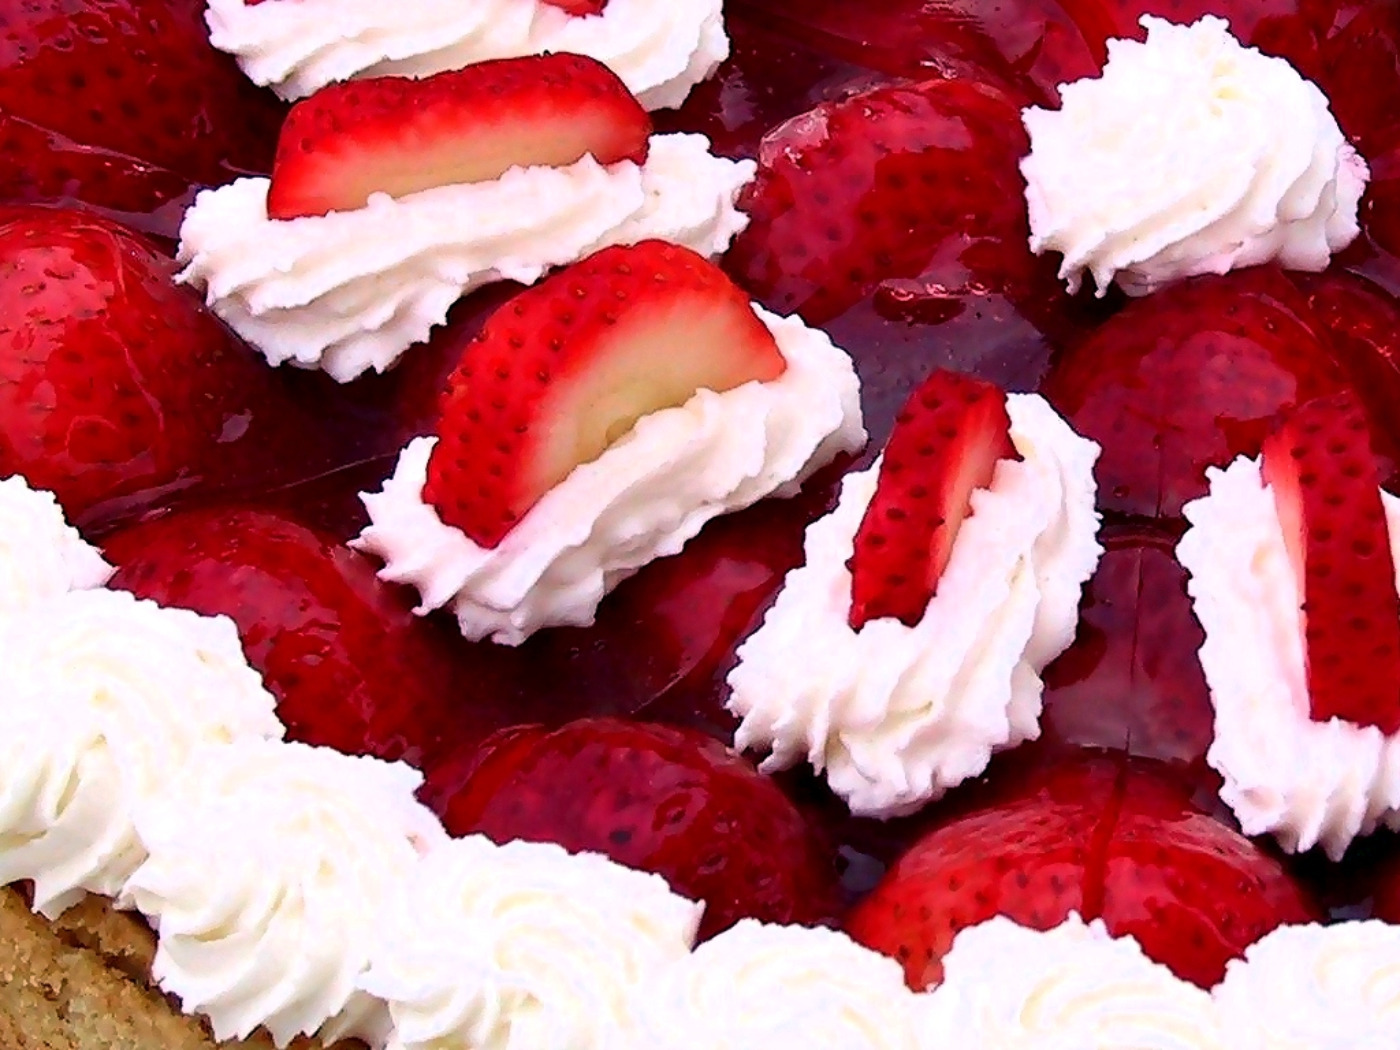 Alimento - Strawberry  Sfondo